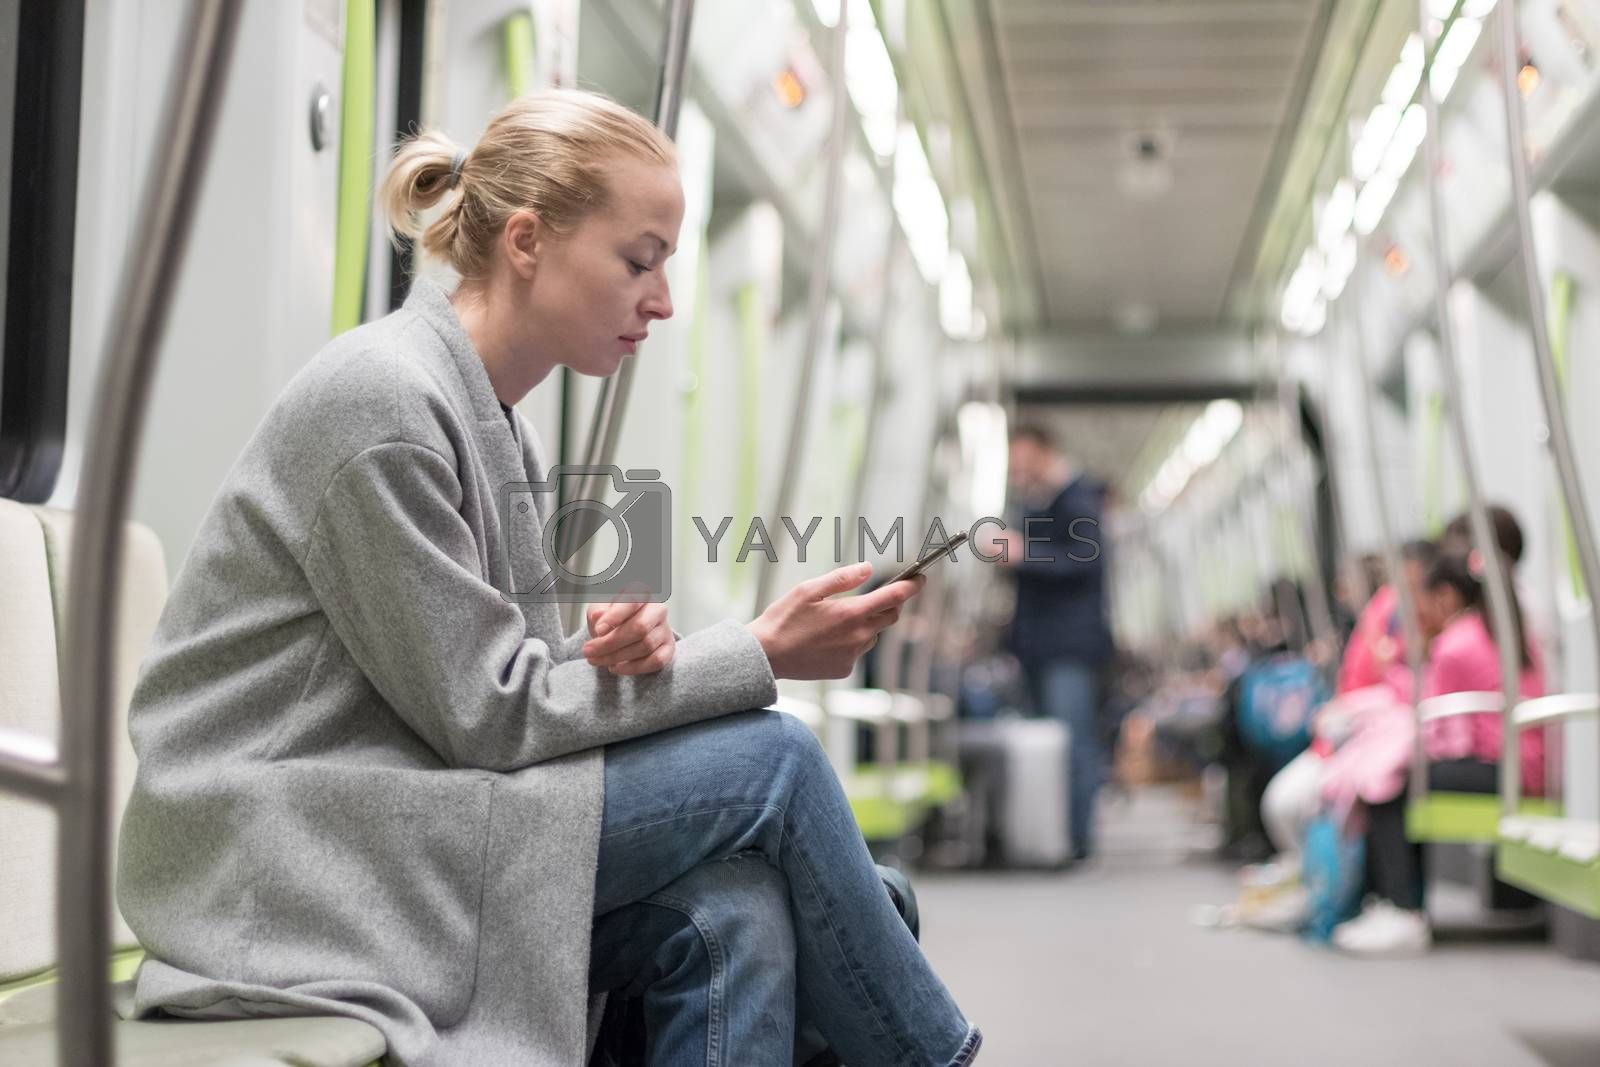 Portrait of lovely girl typing message on mobile phone in almost empty public subway train. Staying at home and social distancing recomented due to corona virus pandemic outbreak.